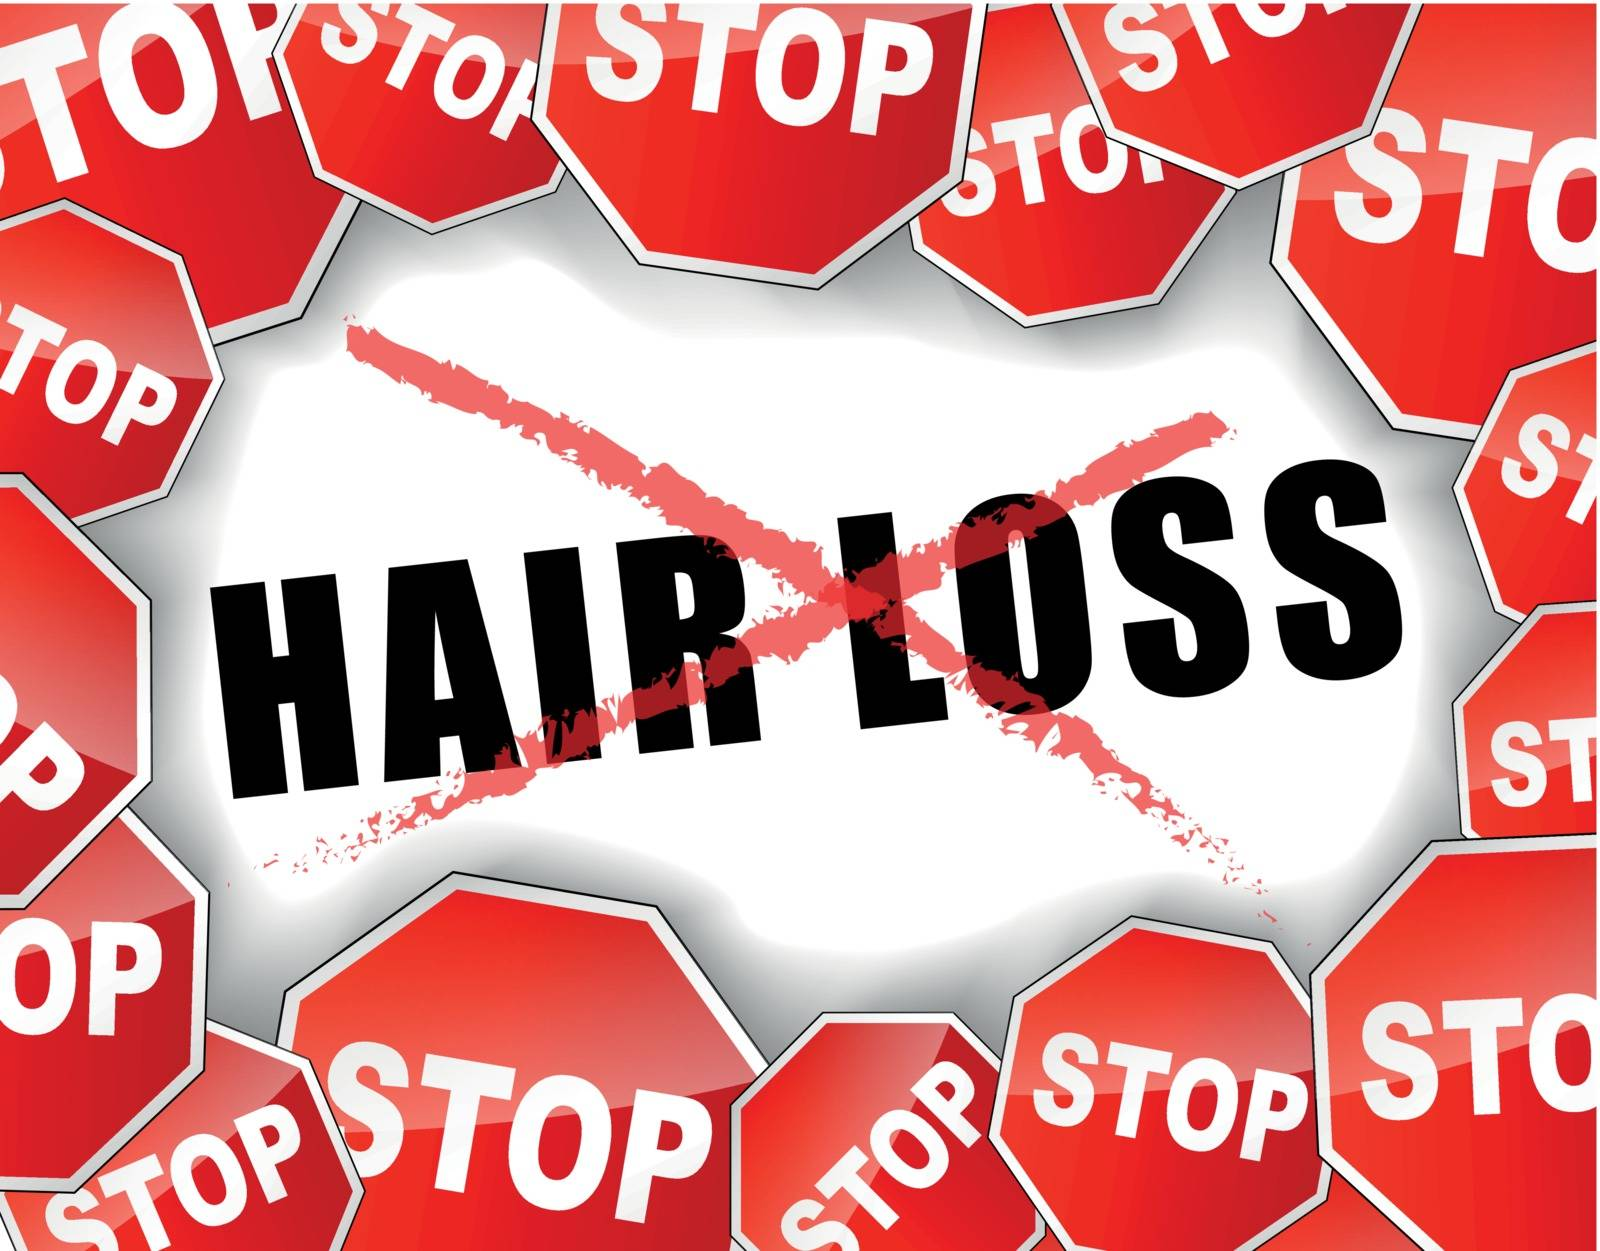 Vector illustration background for stop hair loss concept